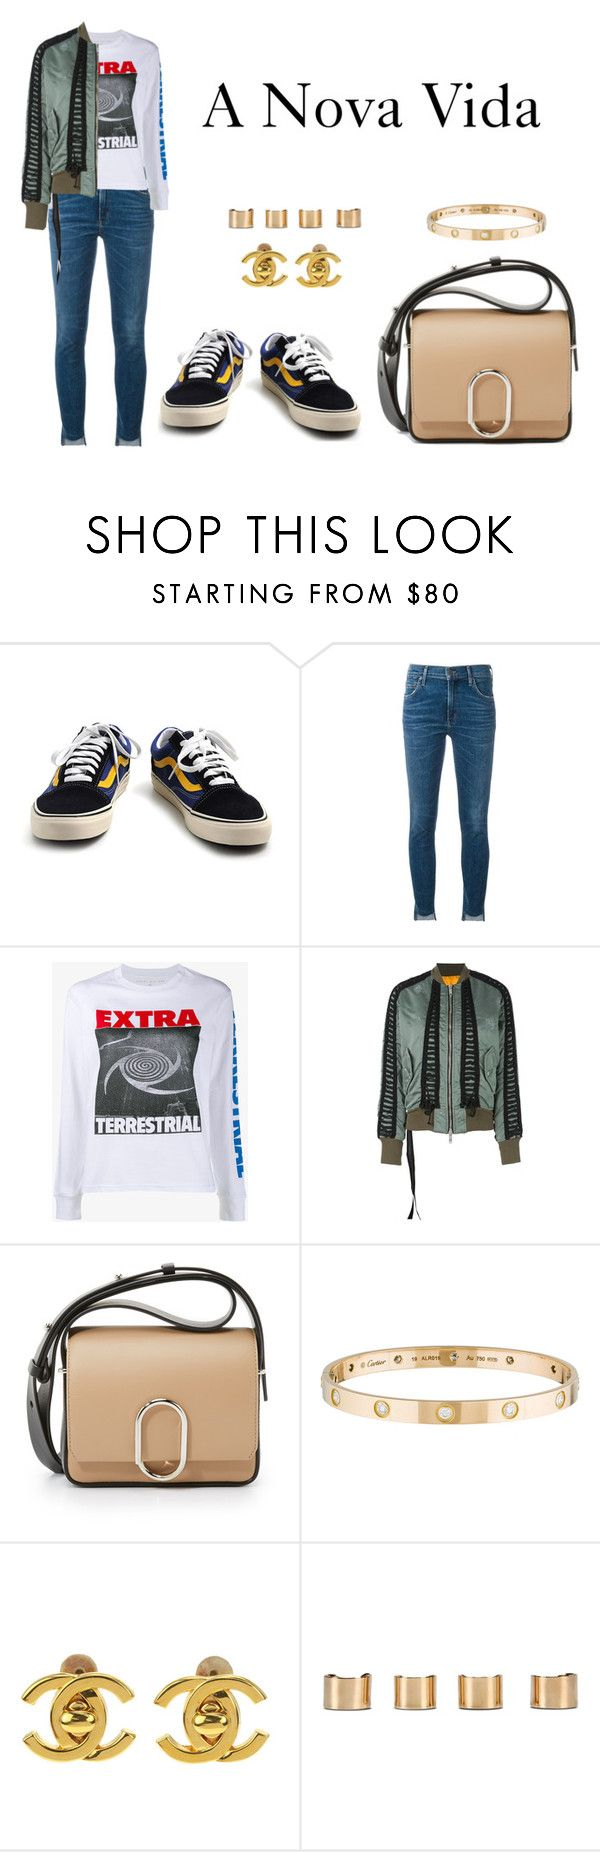 """""""A Nova Vida"""" by anaelle2 ❤ liked on Polyvore featuring Vans, Citizens of Humanity, Ashley Williams, Unravel, 3.1 Phillip Lim, Cartier, Chanel and Maison Margiela"""